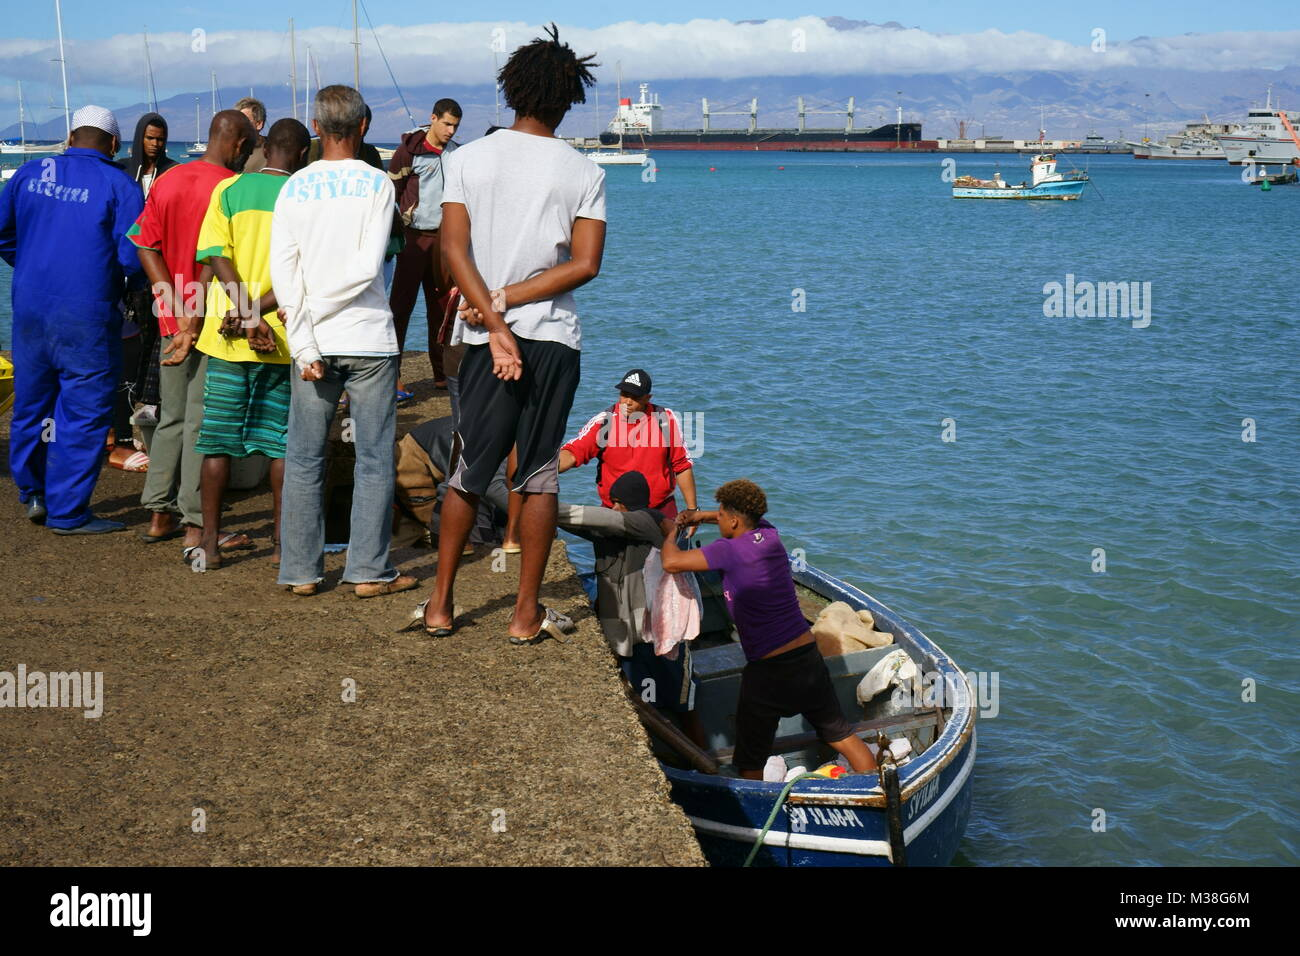 People Watching the Unloading of Fisher Boats in Mindelo, sao Vincente, Cape verde Stock Photo